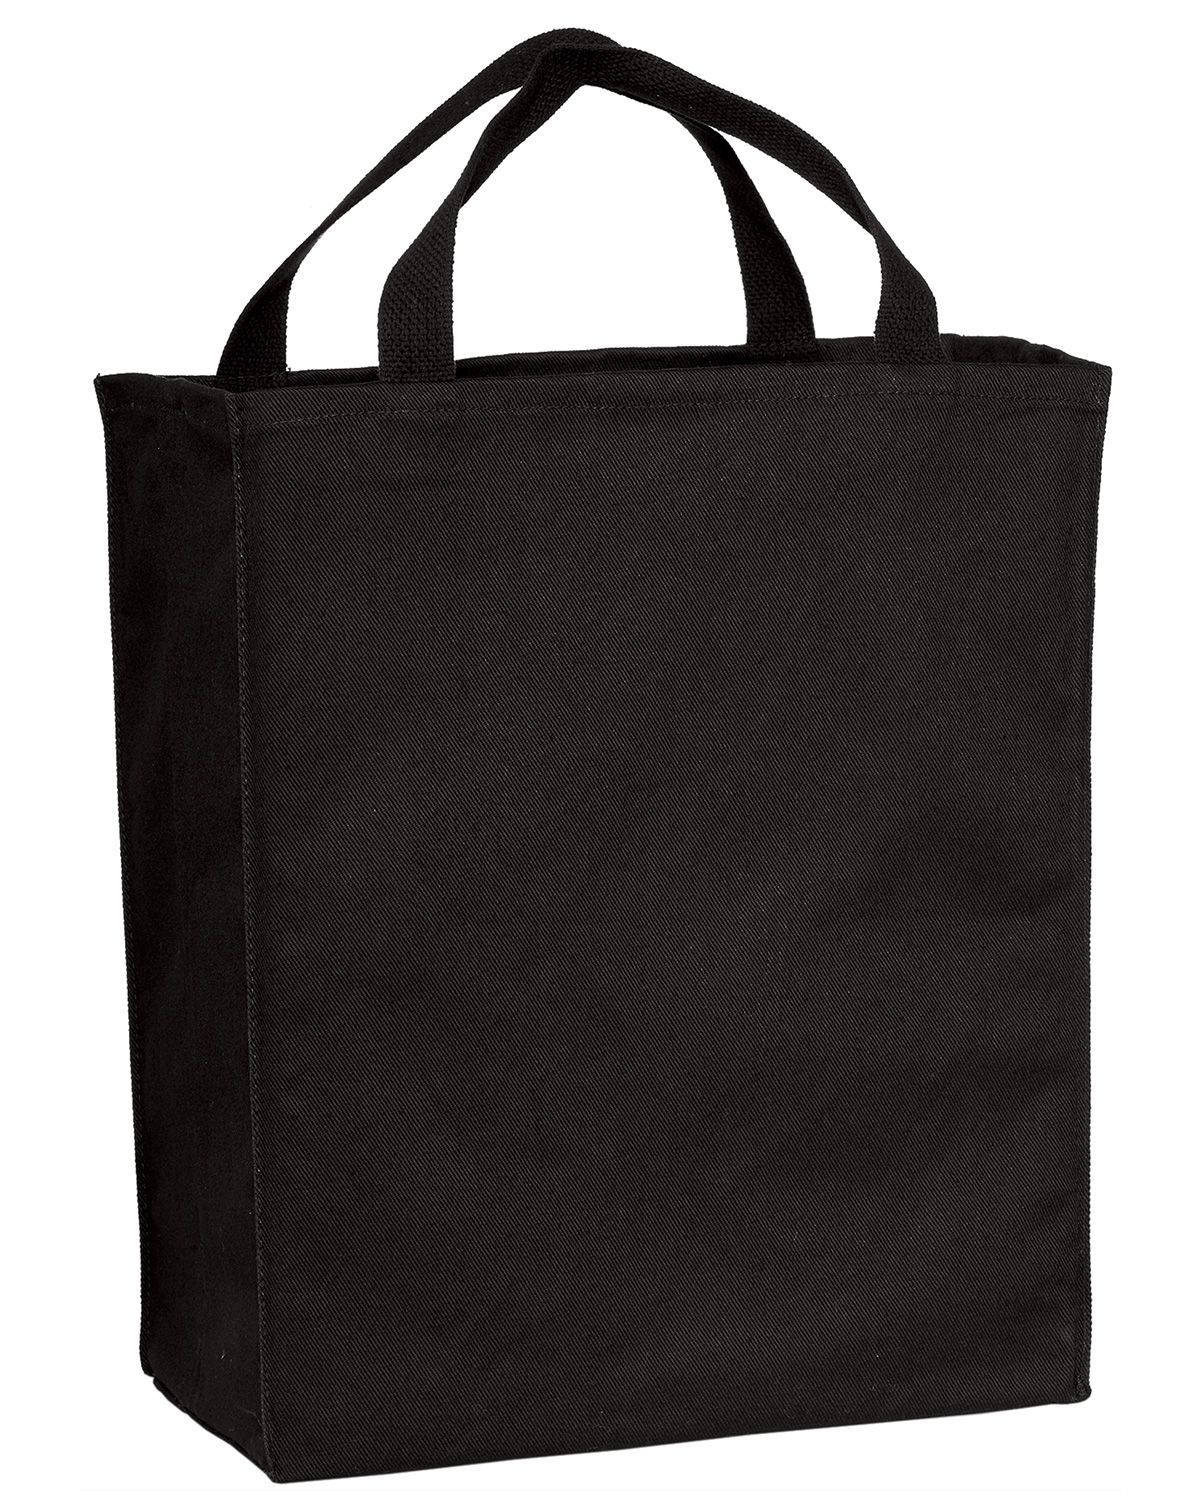 Port Authority B100 Grocery Tote